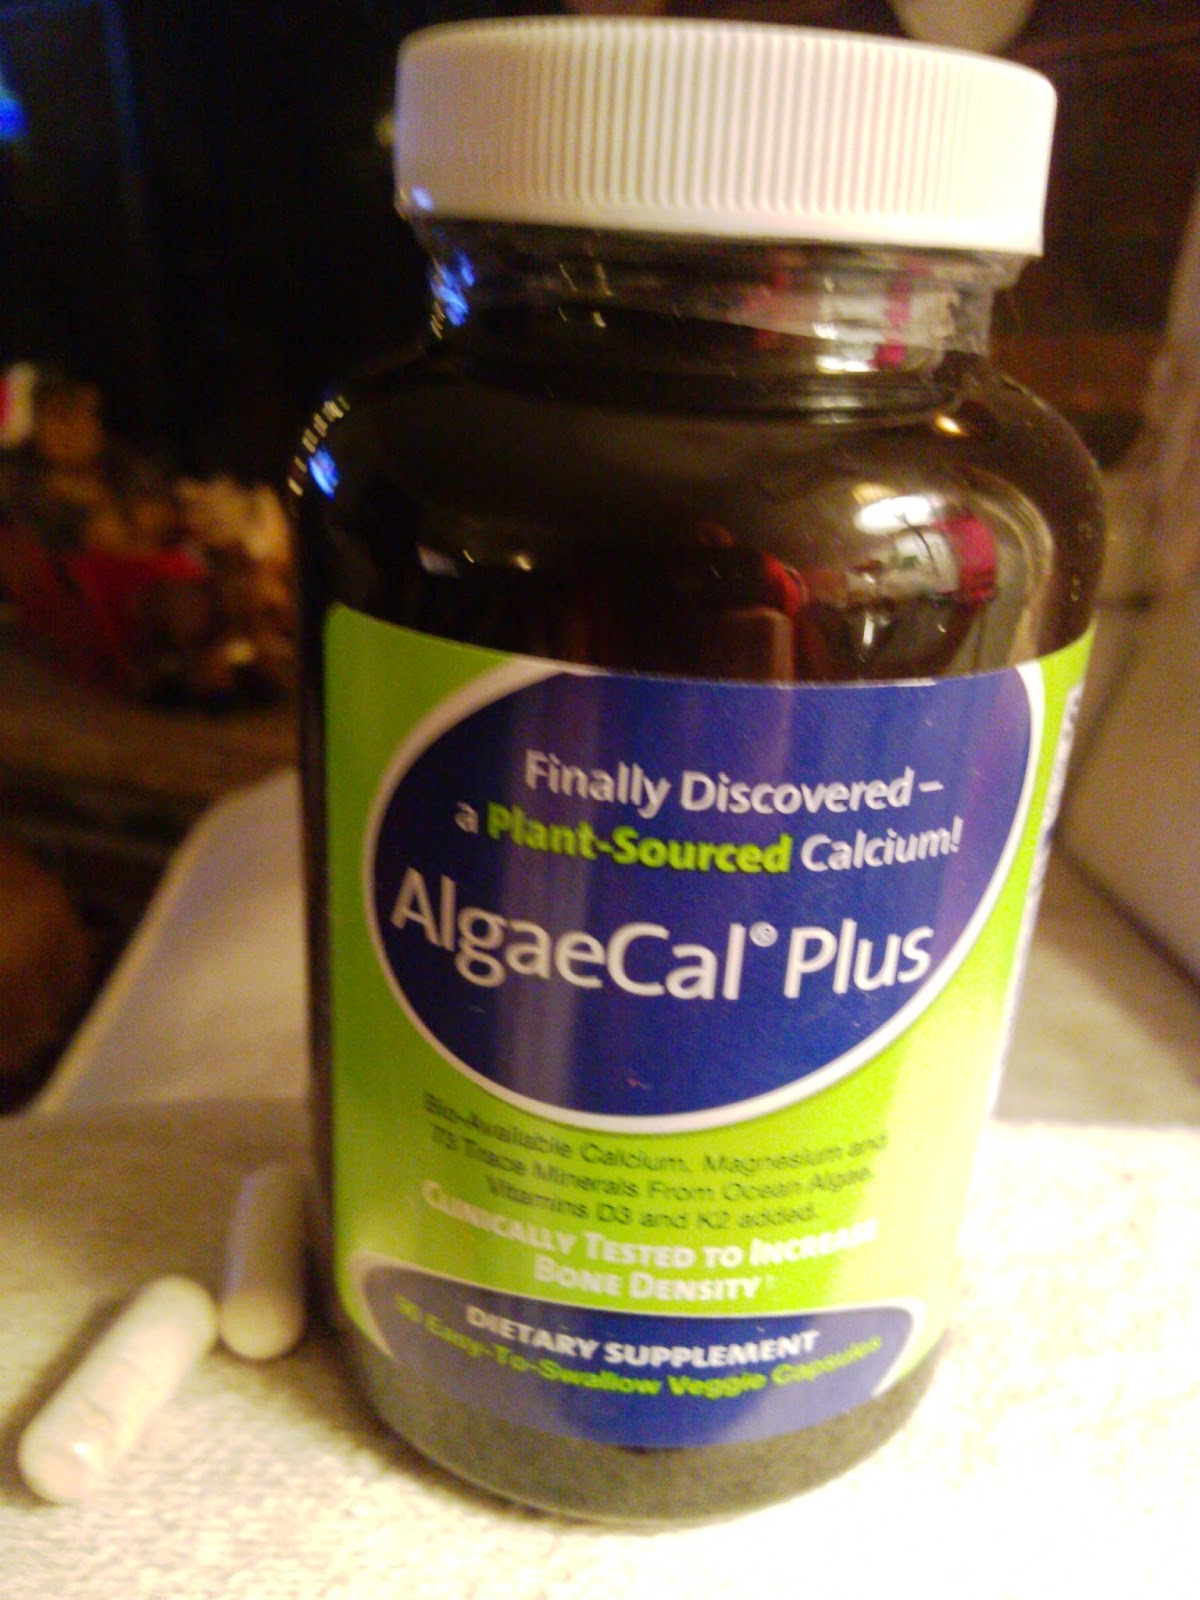 AlgaeCal Plant-Sourced Calcium Review